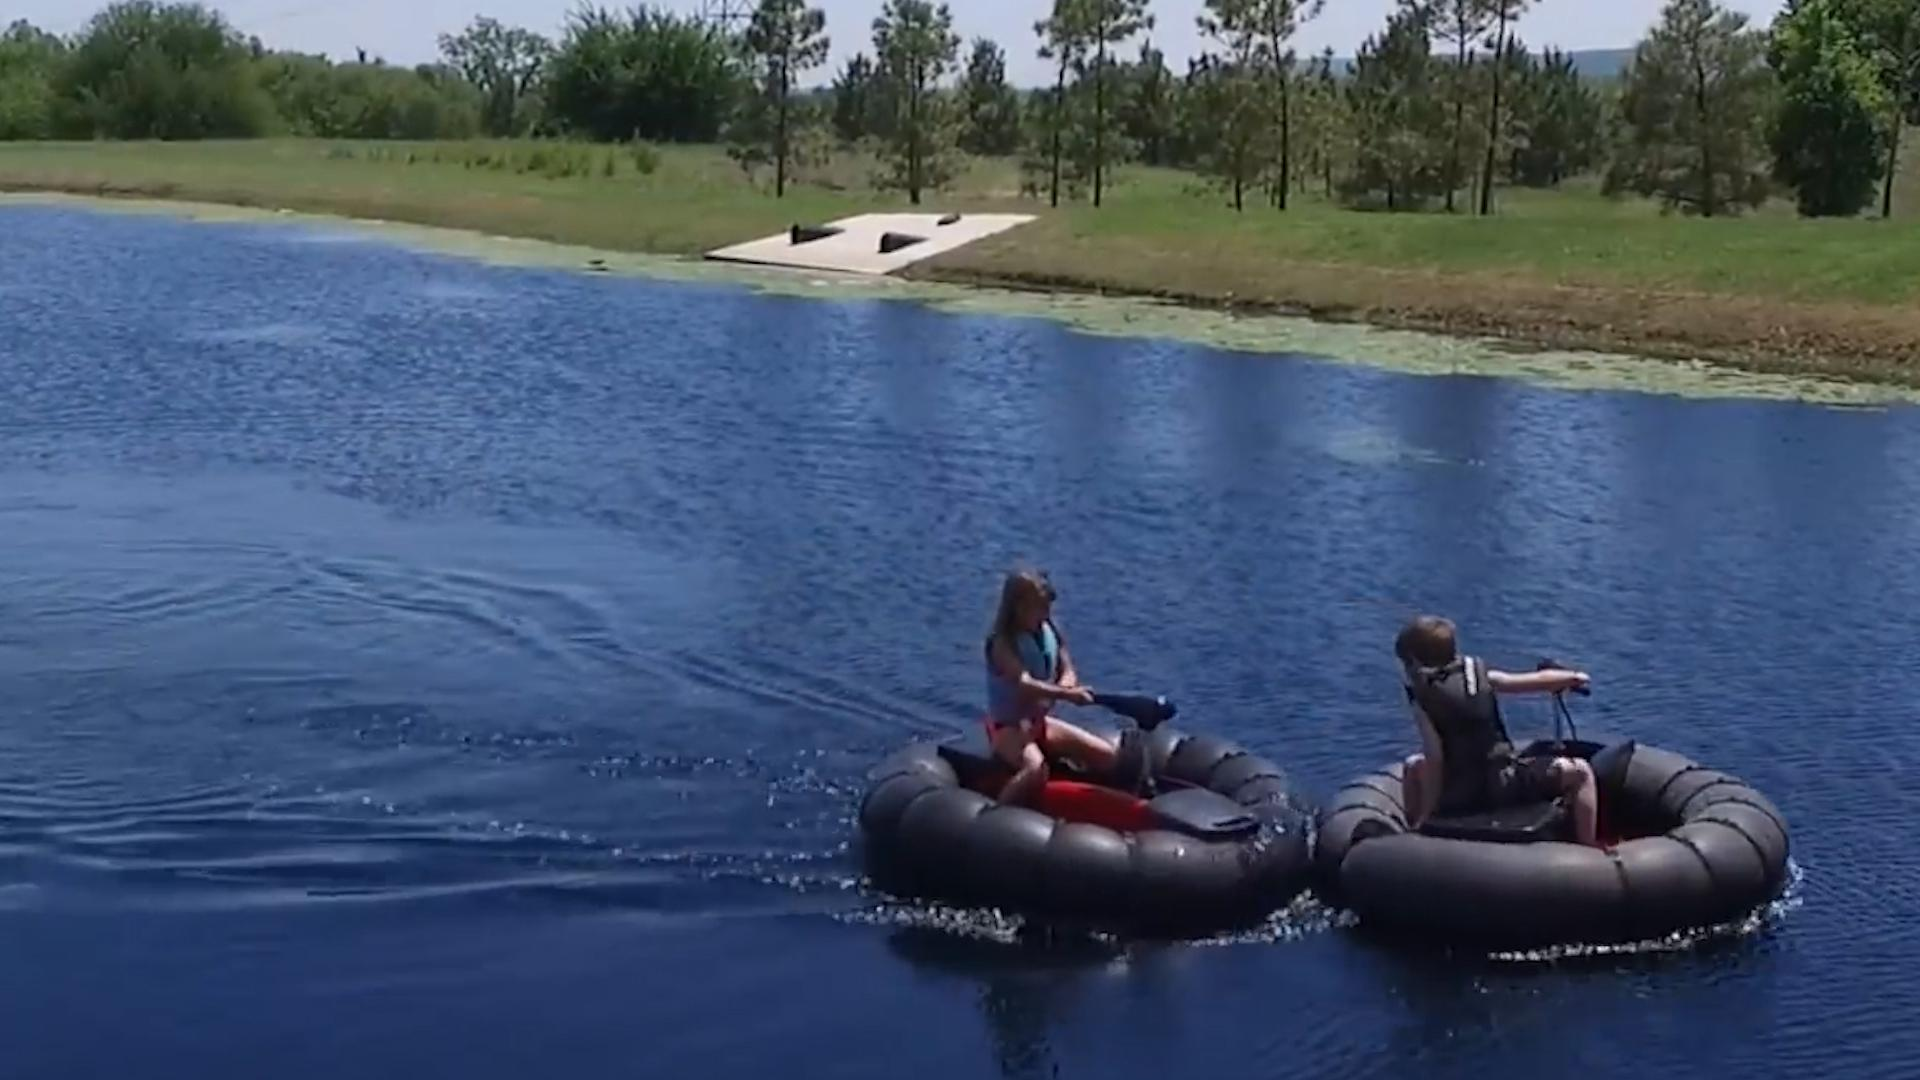 This personal watercraft is completely portable